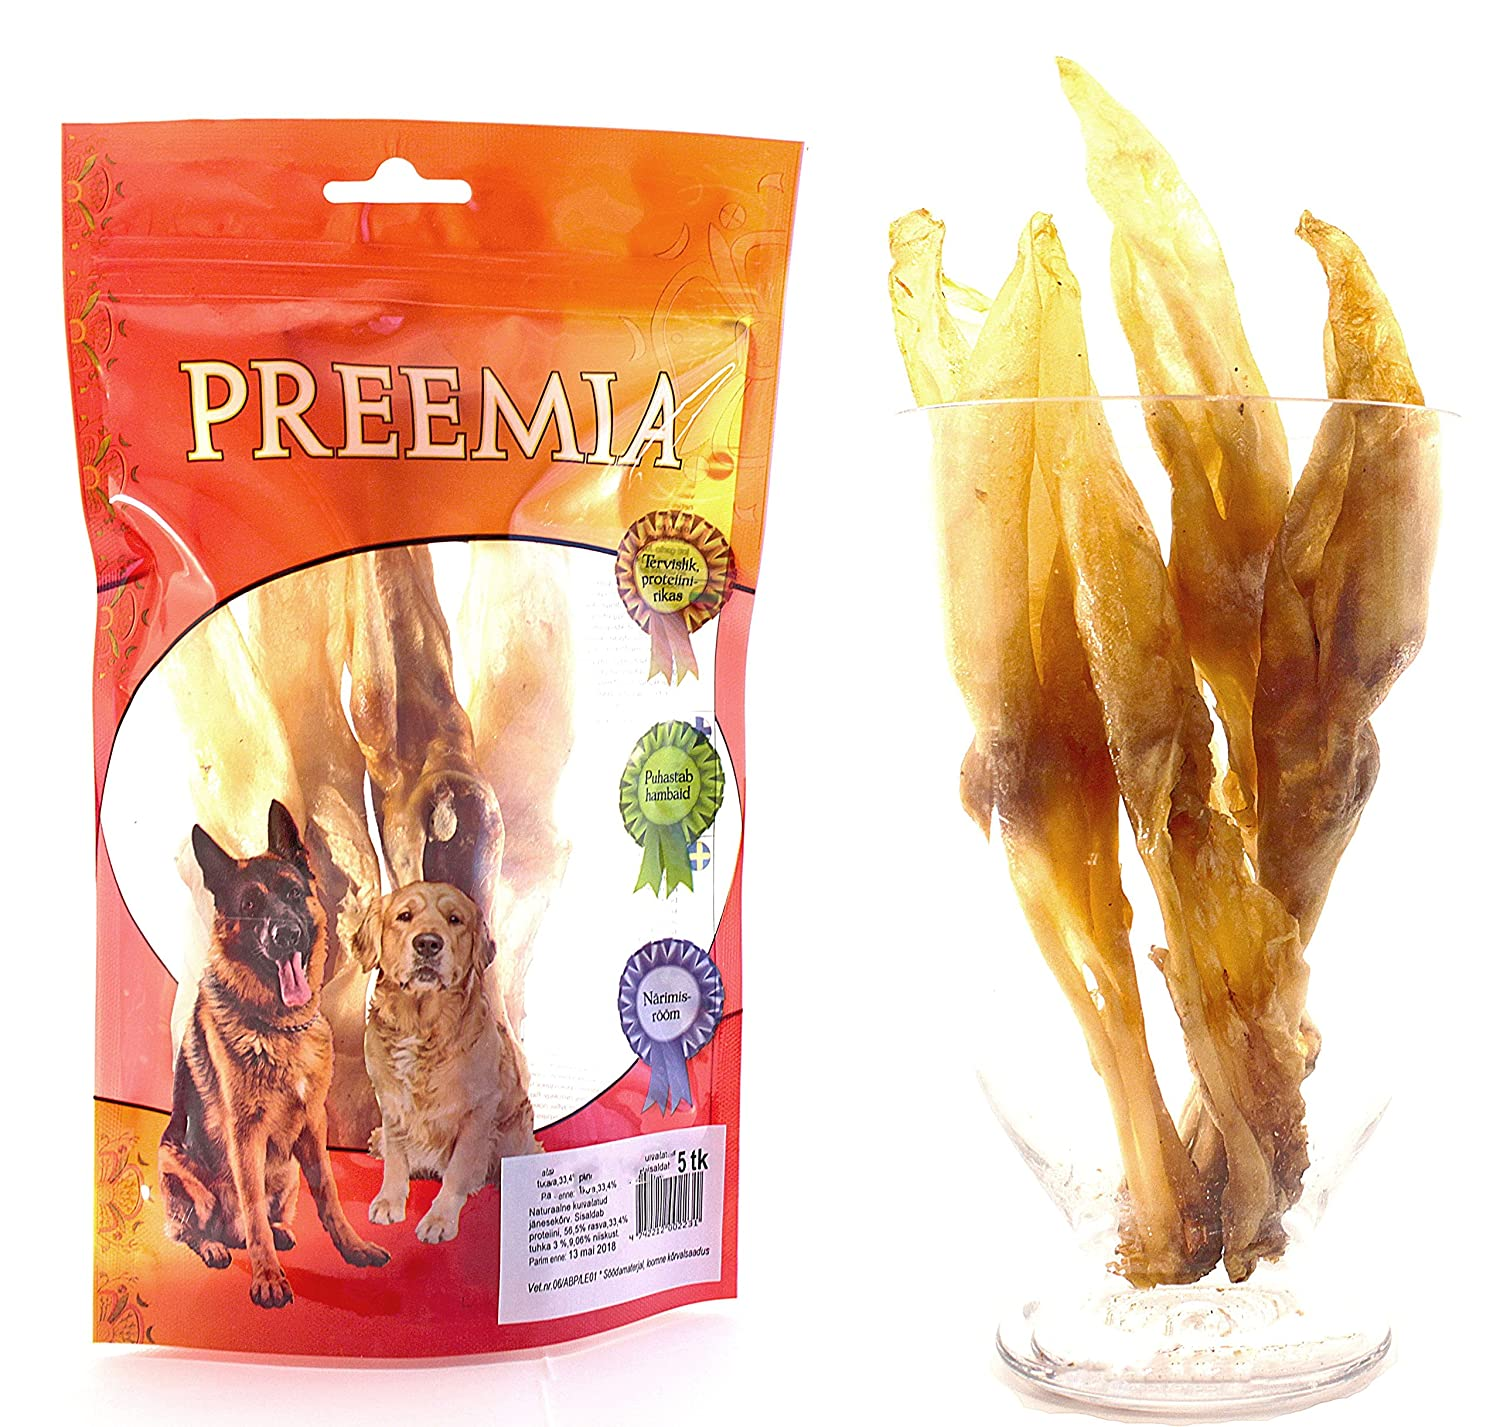 naturel Snack pour chien 12-15psc 200g | Christmas gift dog surprice Dog treats Food dog stix snack treat biscuits dental chews toothbrush hypoallergenic stick Chewable Hare Pet Pork natural digestible Chew Low Fat Dog Treats High Quality munchies Gift Tra